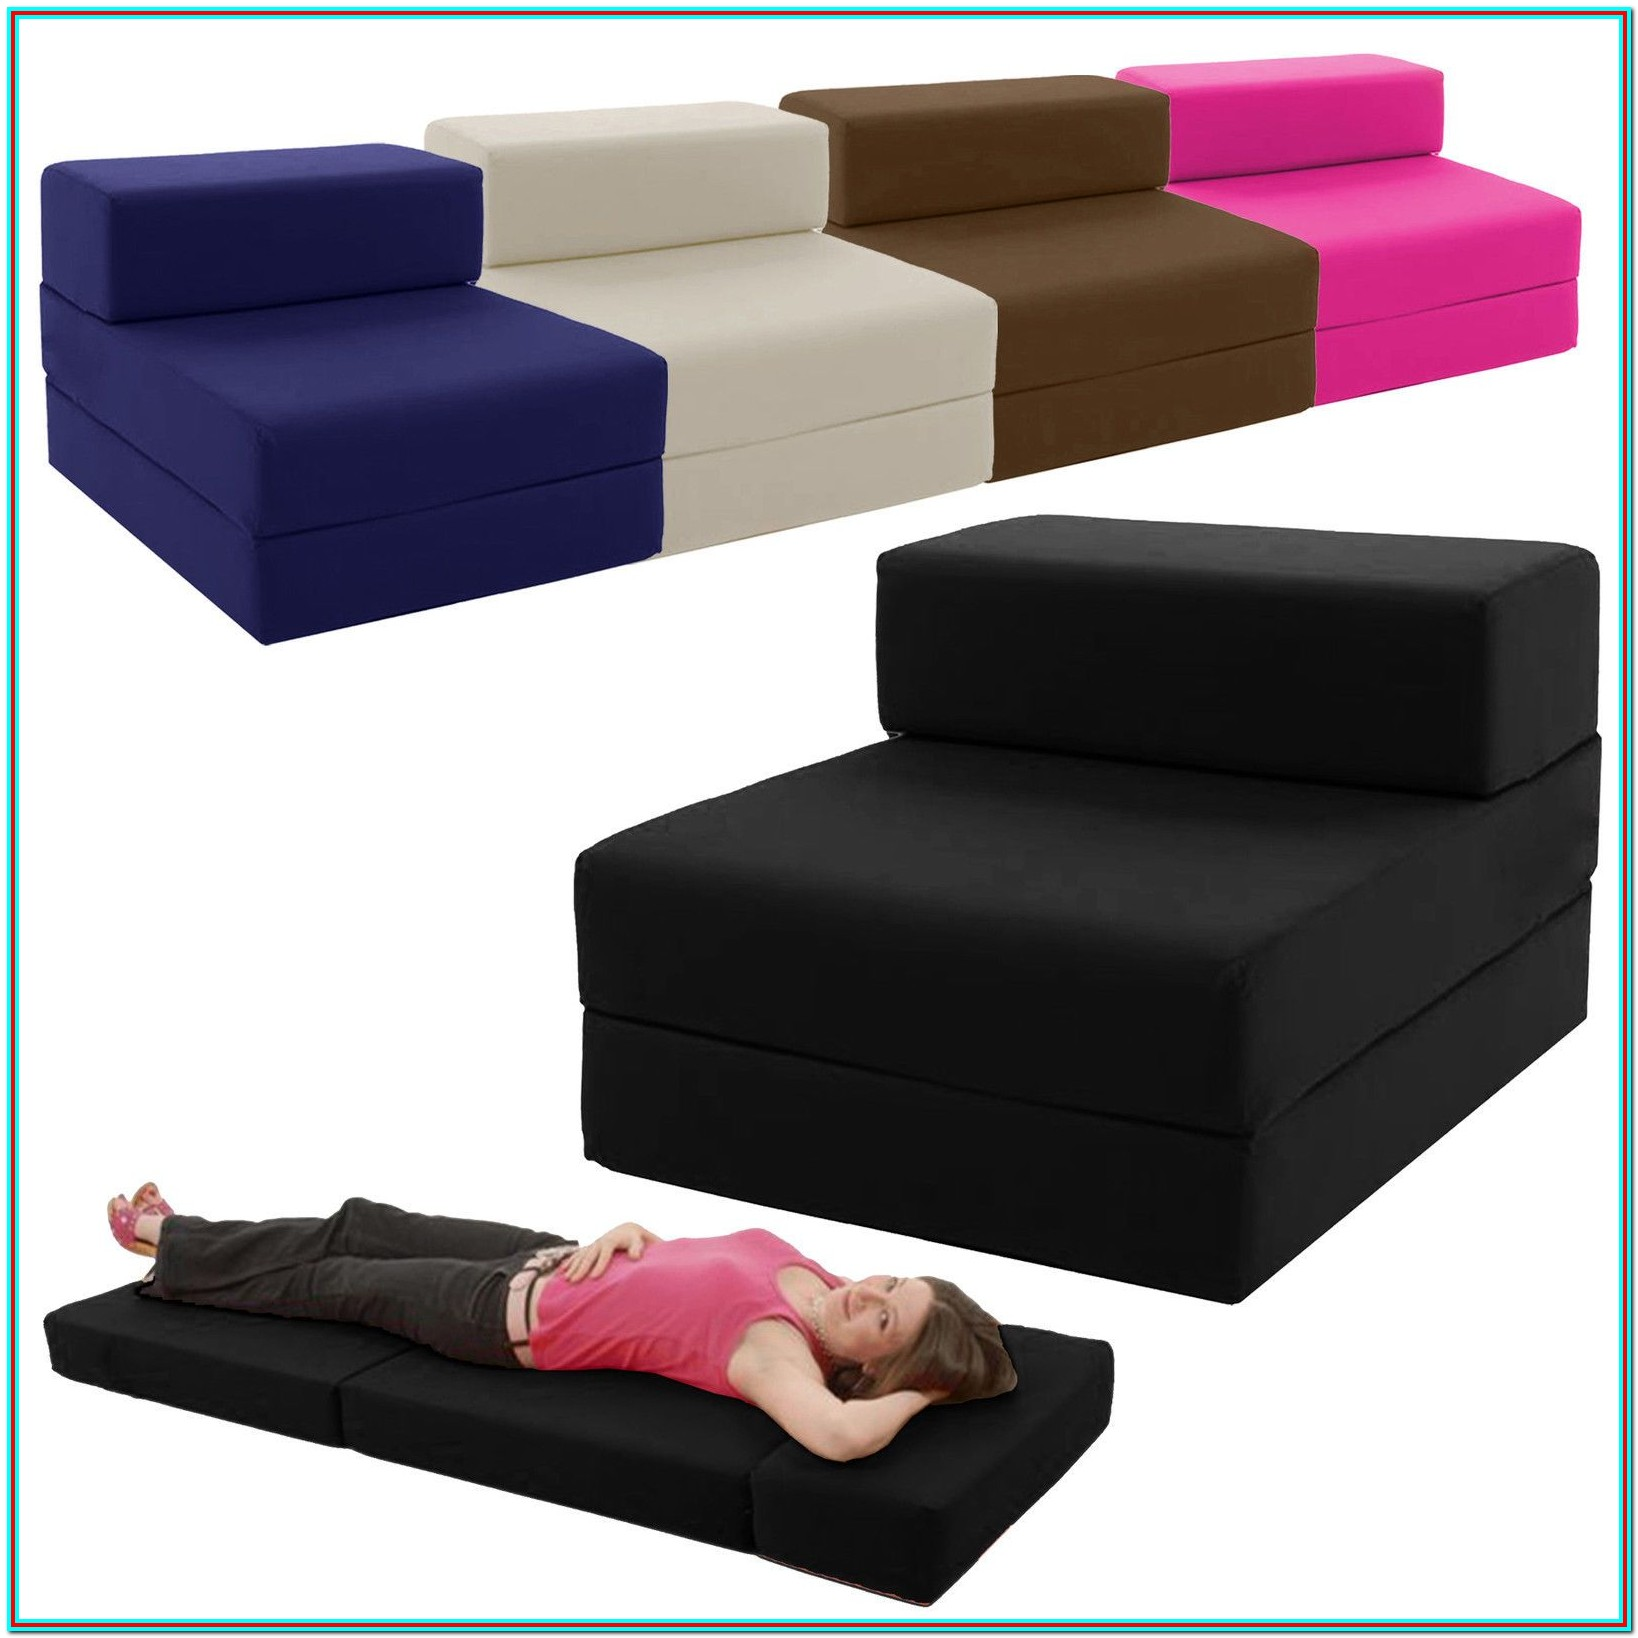 Furniture Sleeper Chair Folding Foam Bed